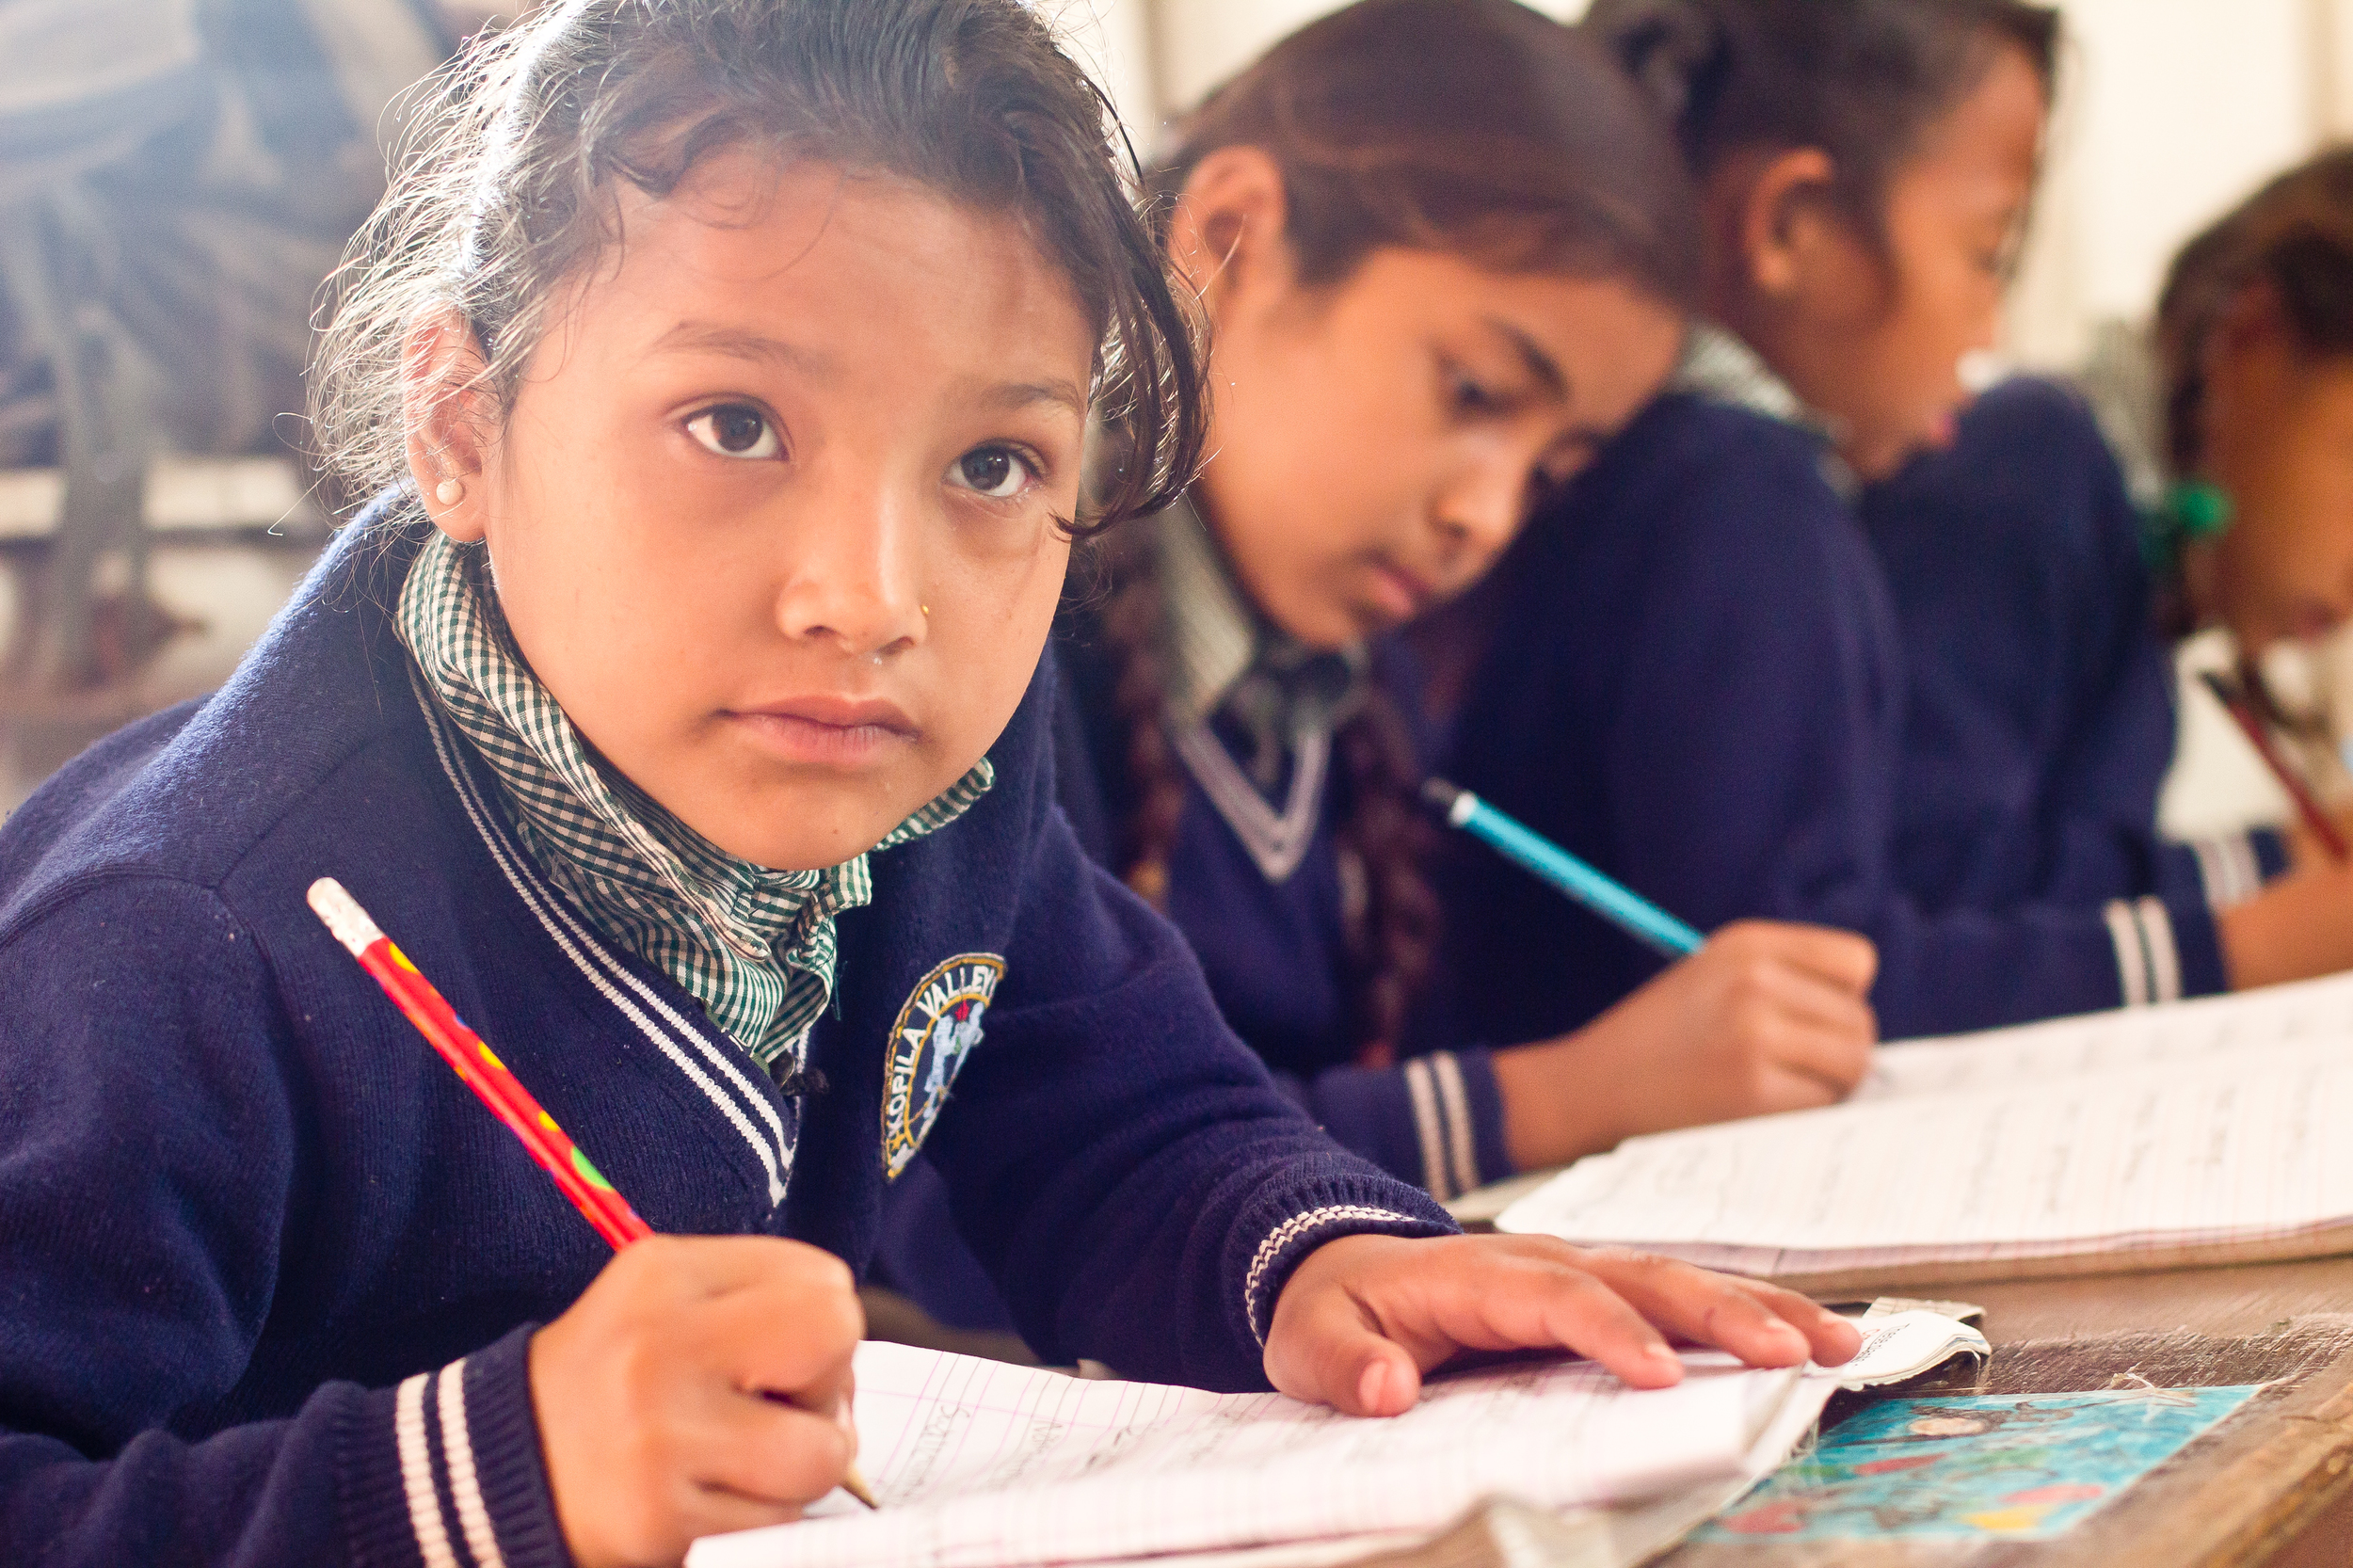 She's the First Scholar Sarita S. concentrates on her lesson in her third grade class in Nepal, March 2015. (photo by Kate Lord)